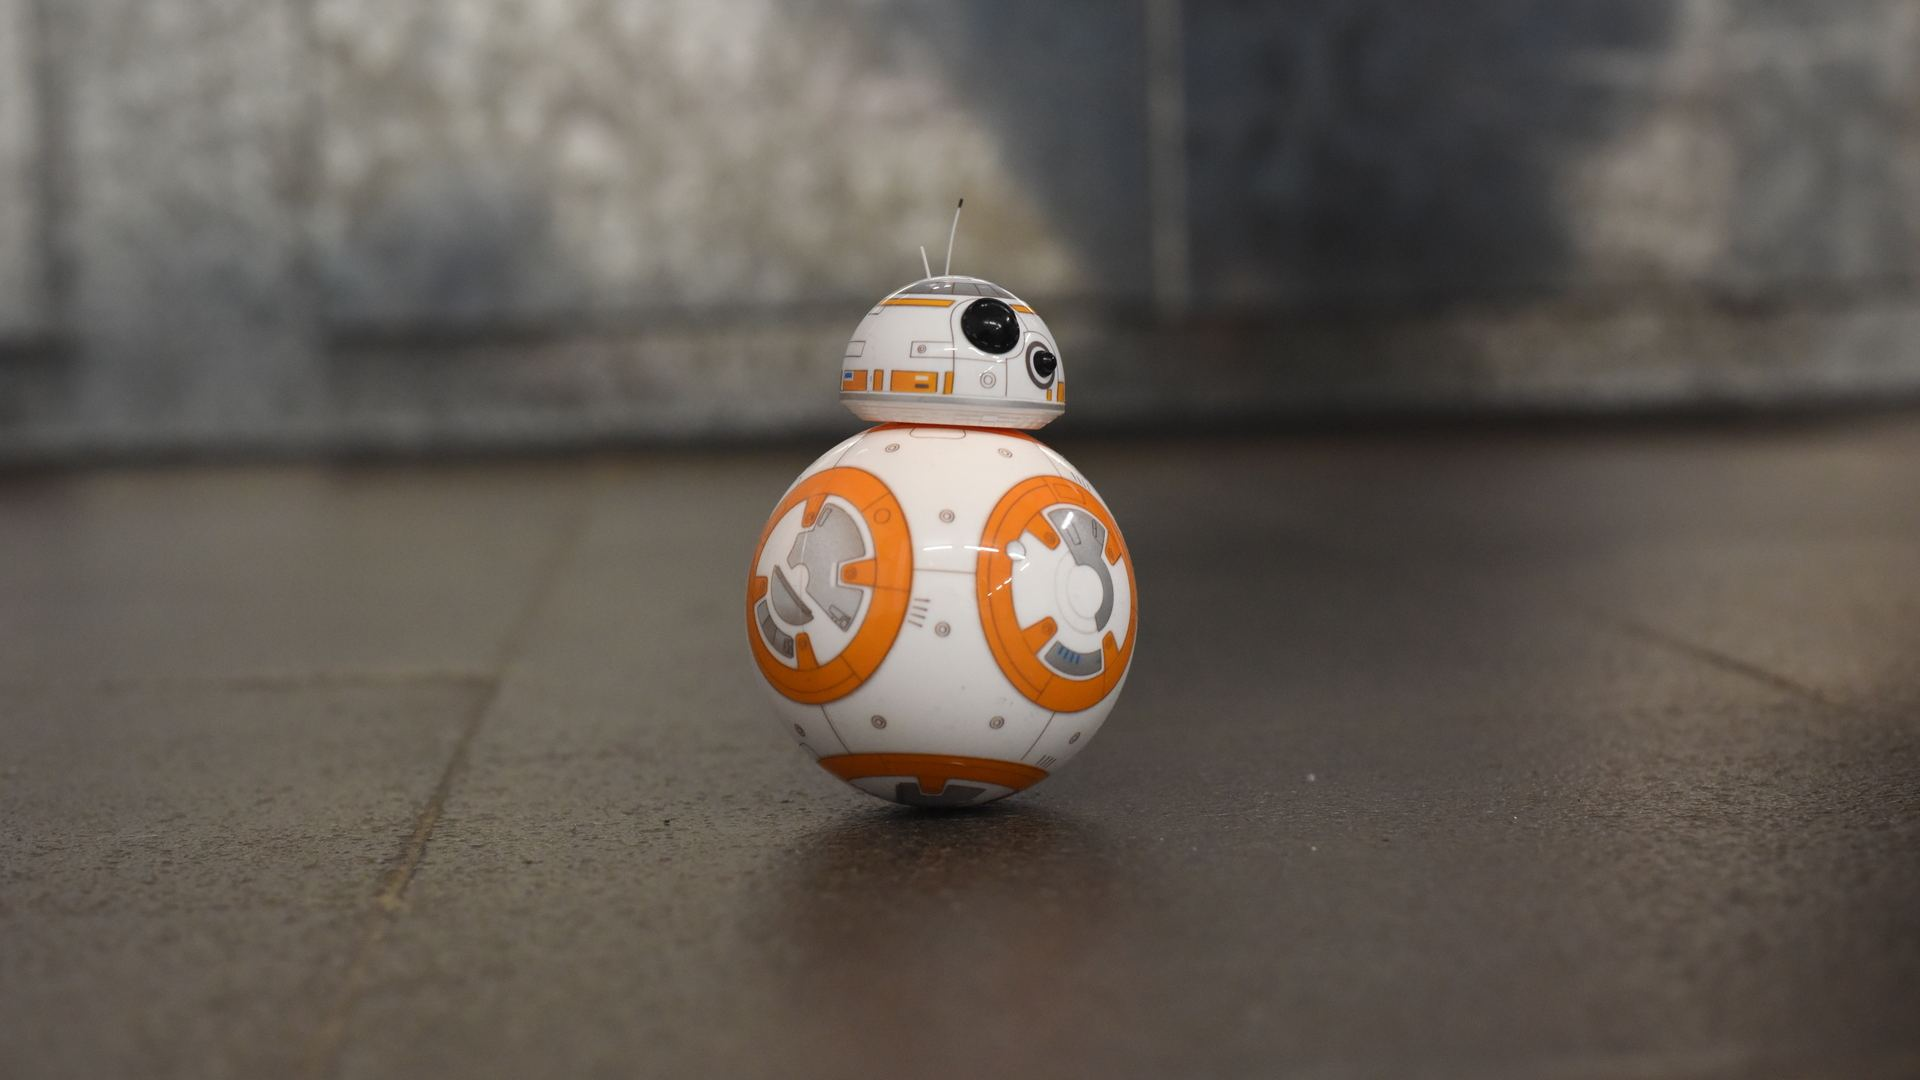 Free Download Bb8 1920x1080 Bb8 Droid 1920x1080 For Your Desktop